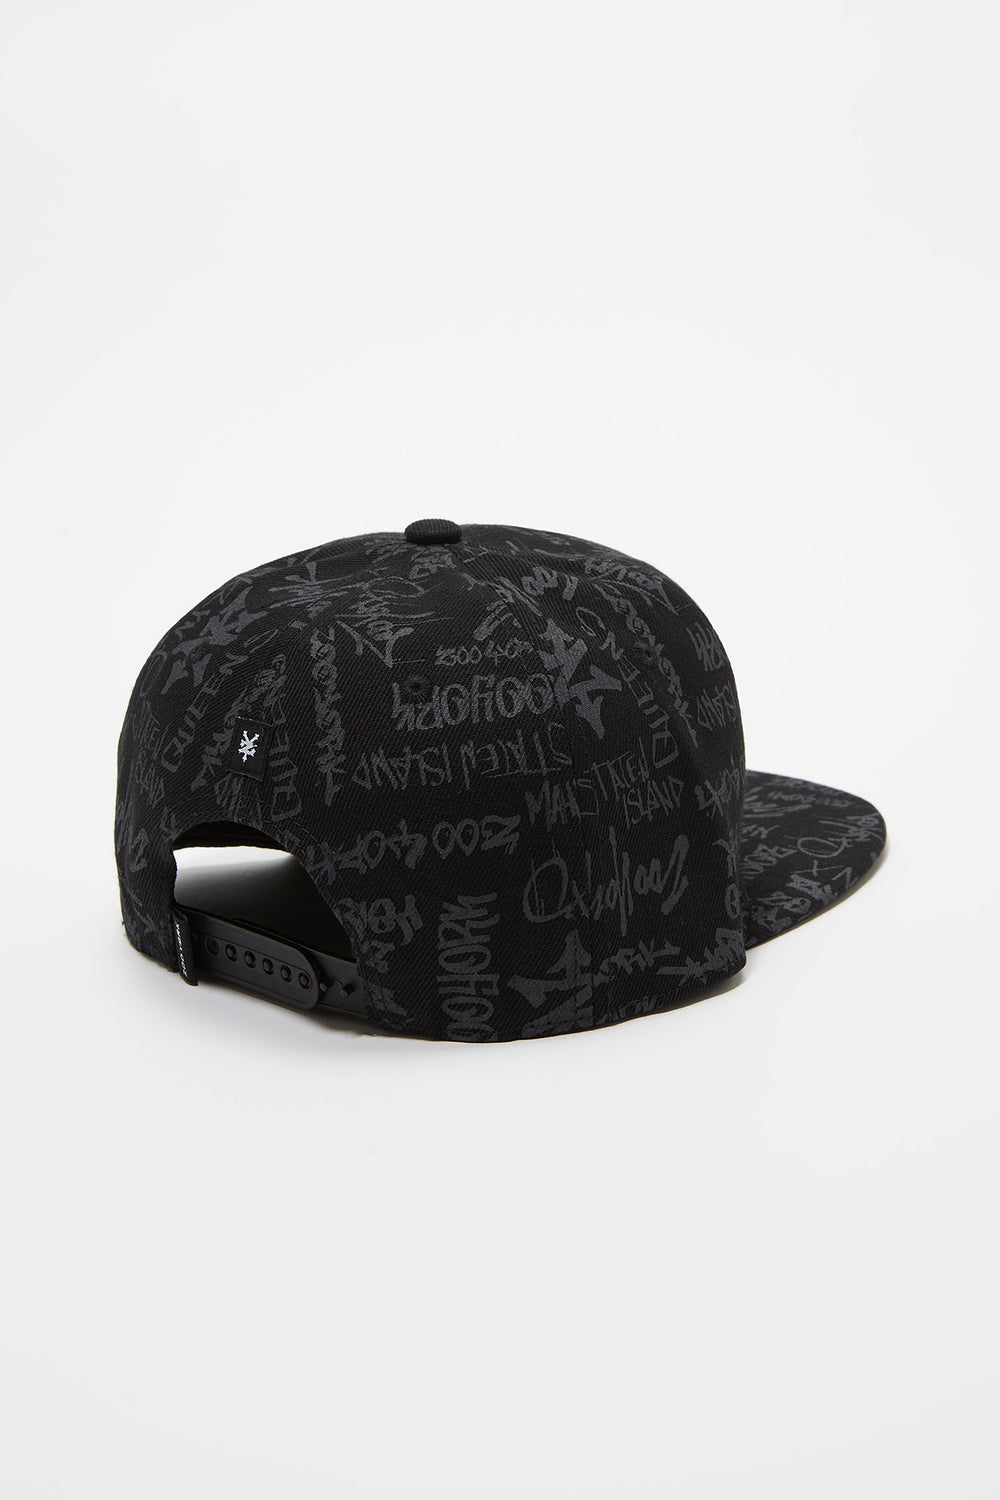 Zoo York Mens Graffiti Snapback Black